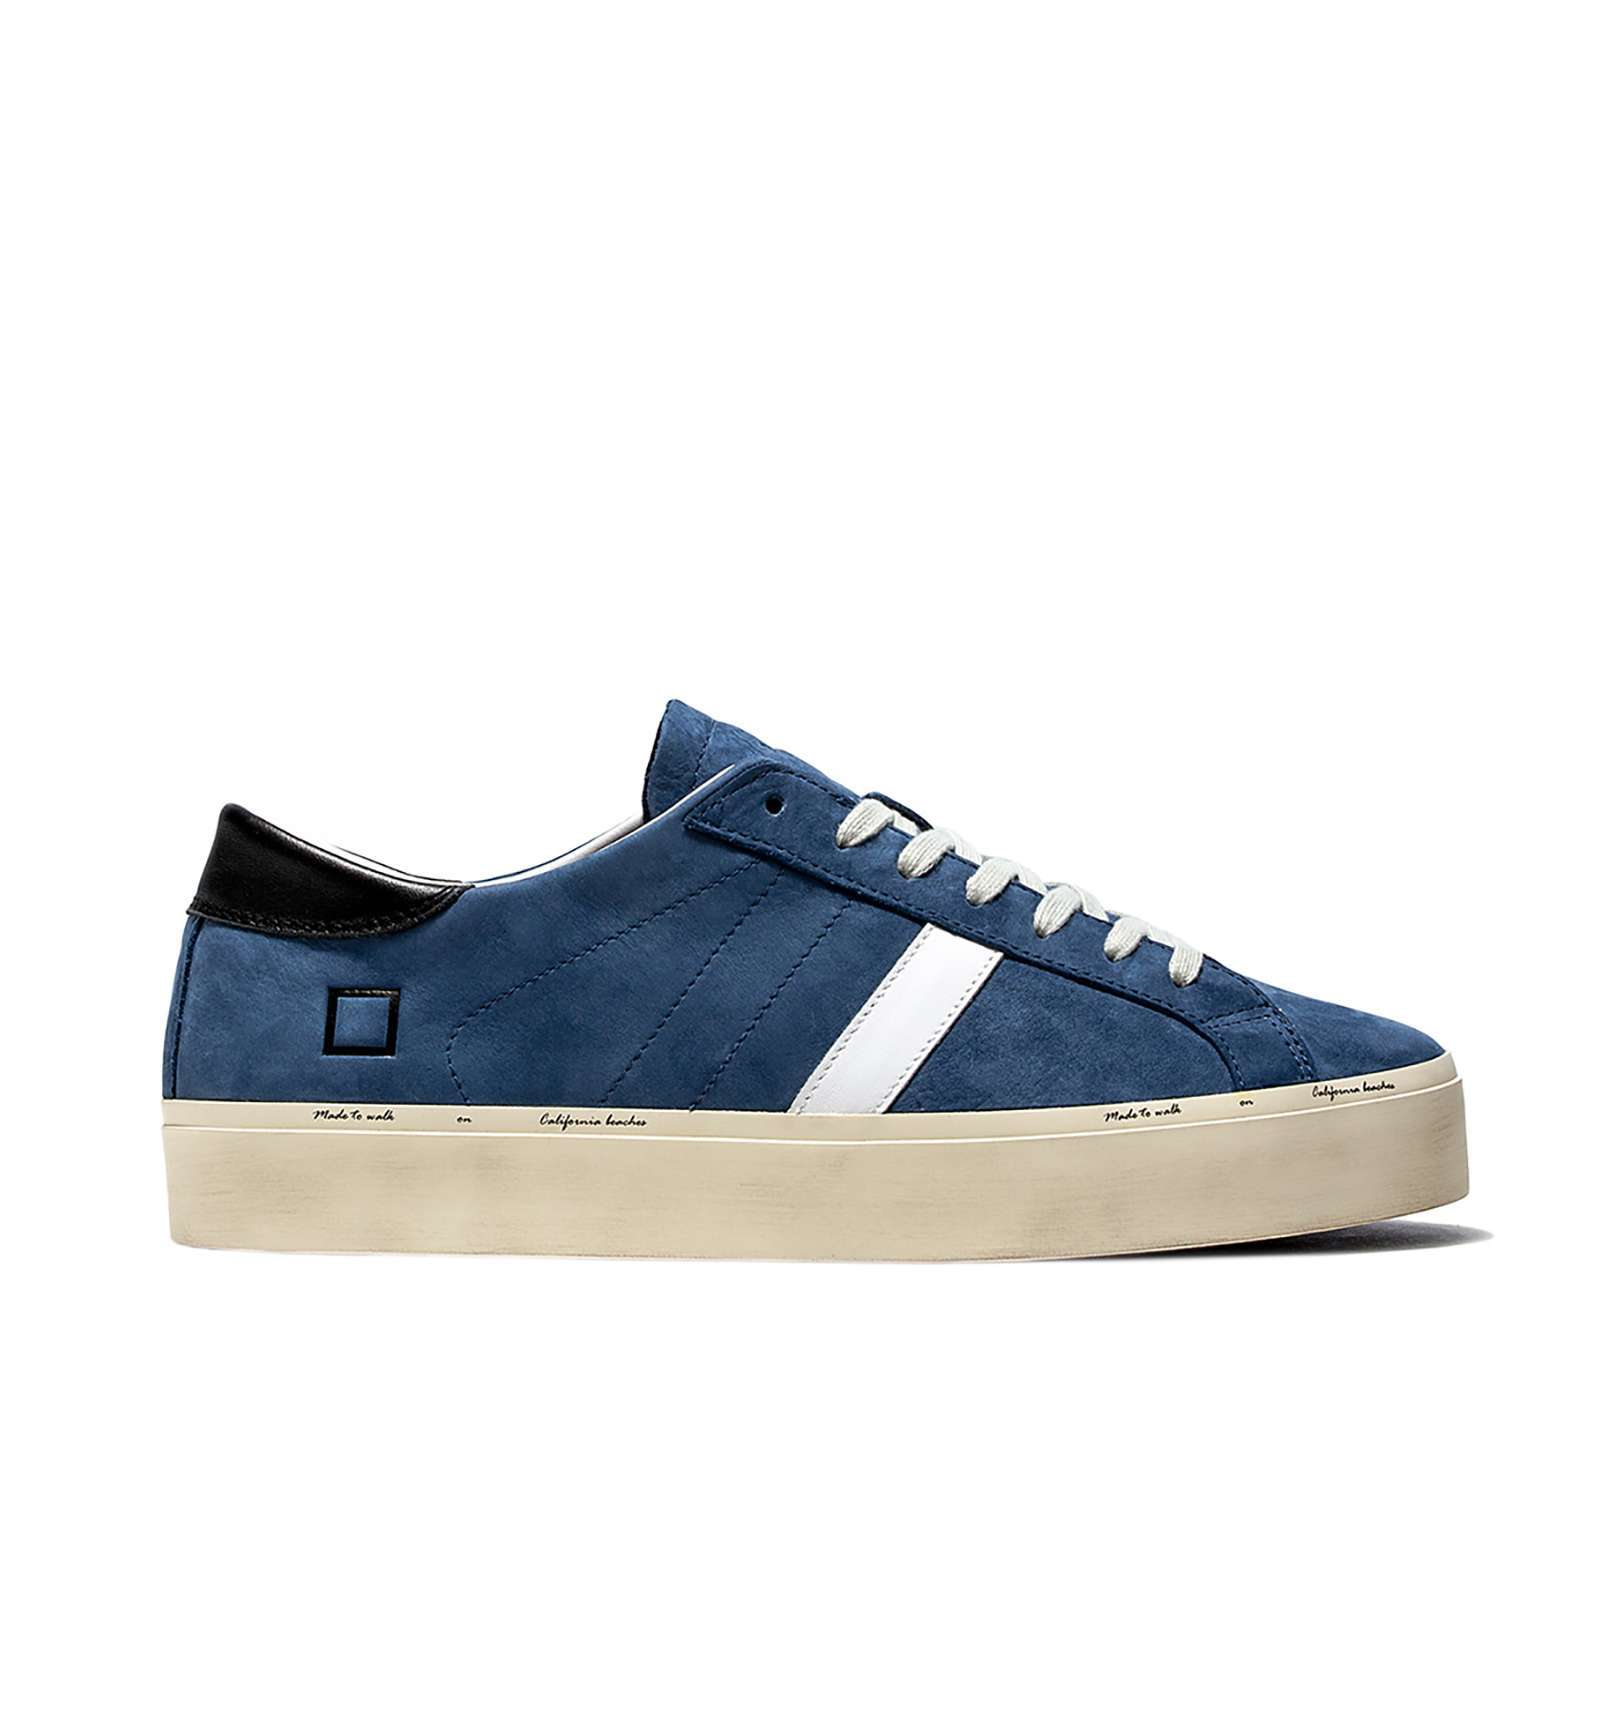 https://www.parmax.com/media/catalog/product/a/i/AI-outlet_parmax-sneaker-uomo-Date-M301-A.jpg